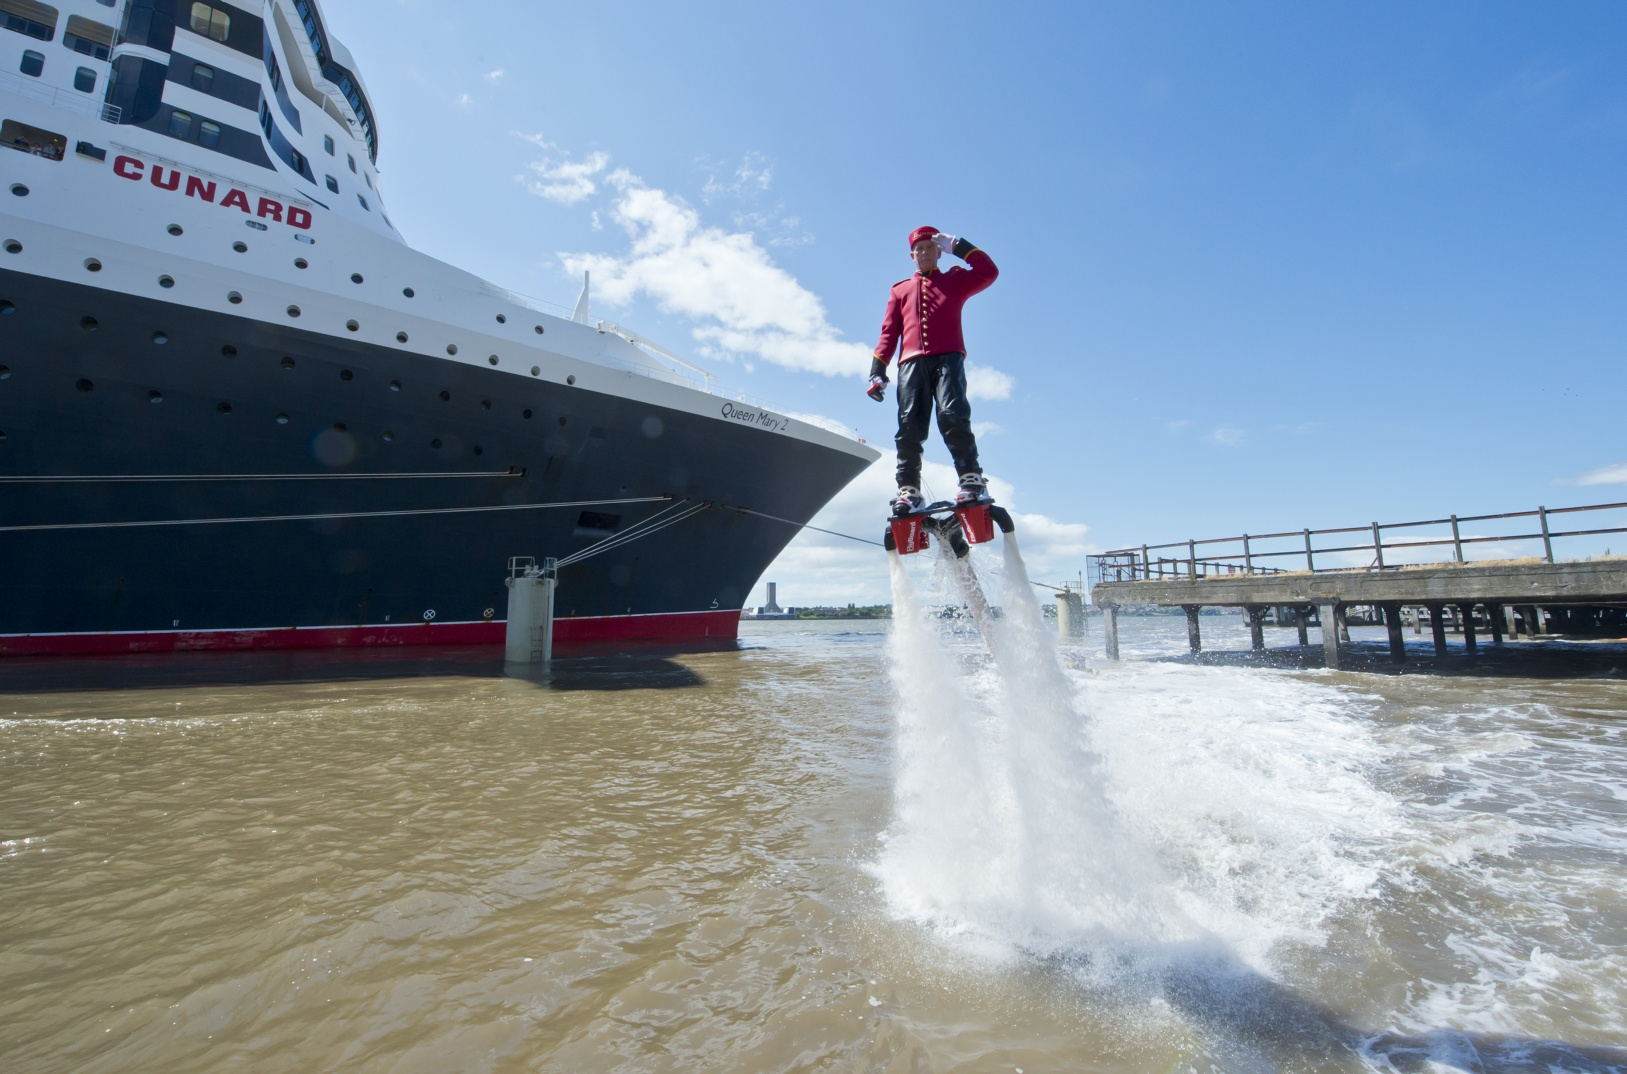 Flyboarder Jay St John, dressed as a bell boy to mark Cunard's 175 Anniversary in Liverpool